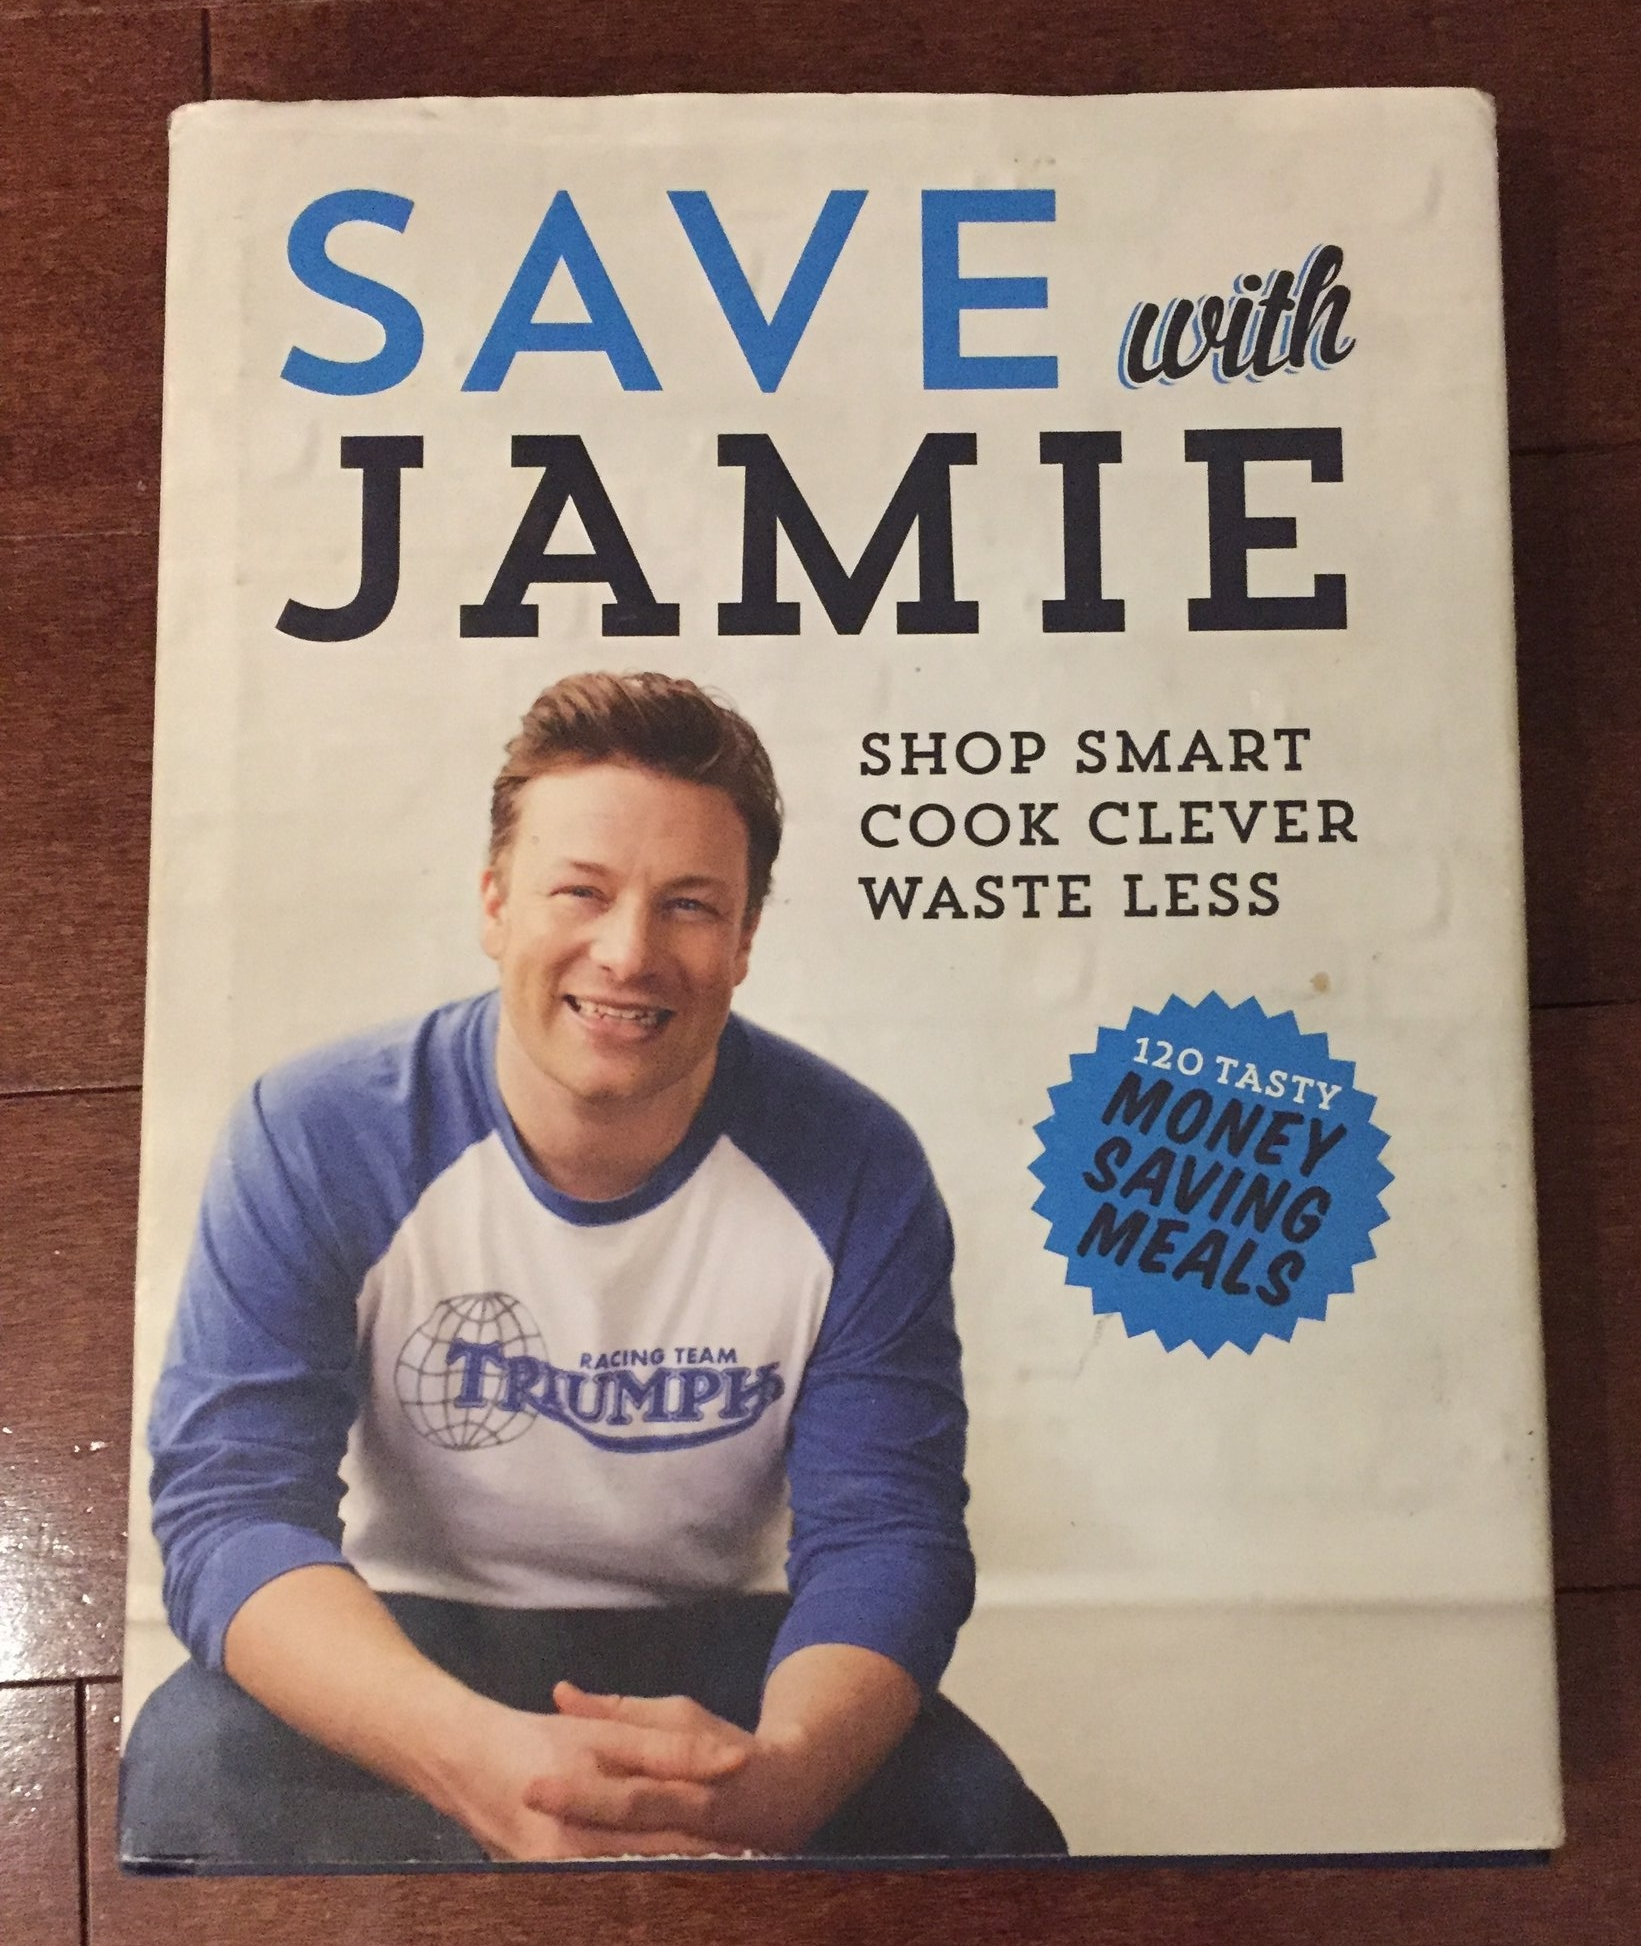 Save with Jamie. This book is awesome. It has straight forward, flavorful recipes that you will love. The best part about this book is it's all about making something special from leftovers. I have about 12 Jamie Oliver books and this is my favourite. I may also be slightly obessed with Jamie Oliver.